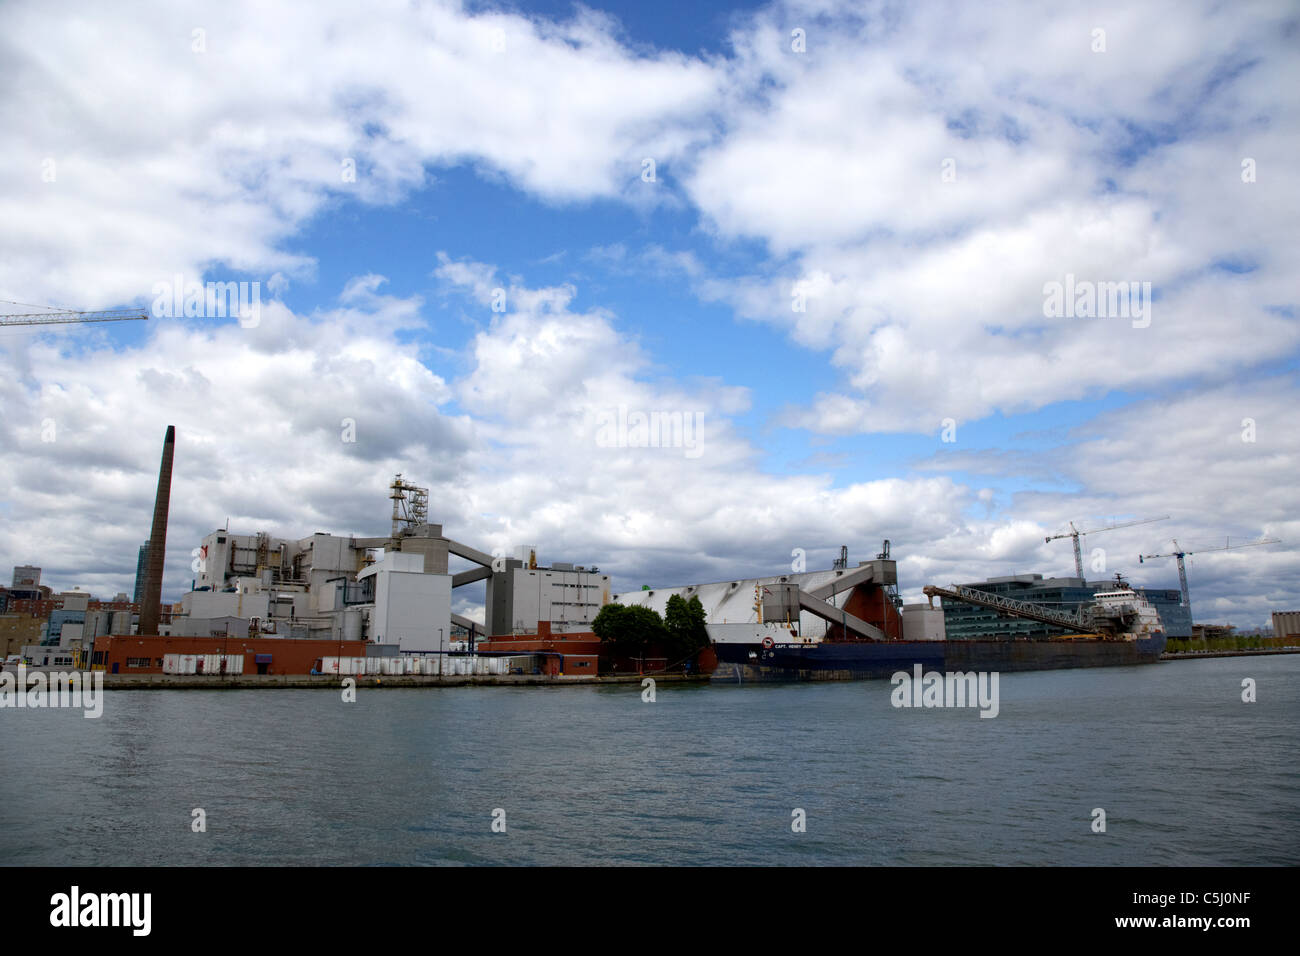 capt henry jackman lake bulk carrier docked at the quay at redpath sugar refinery toronto ontario canada - Stock Image